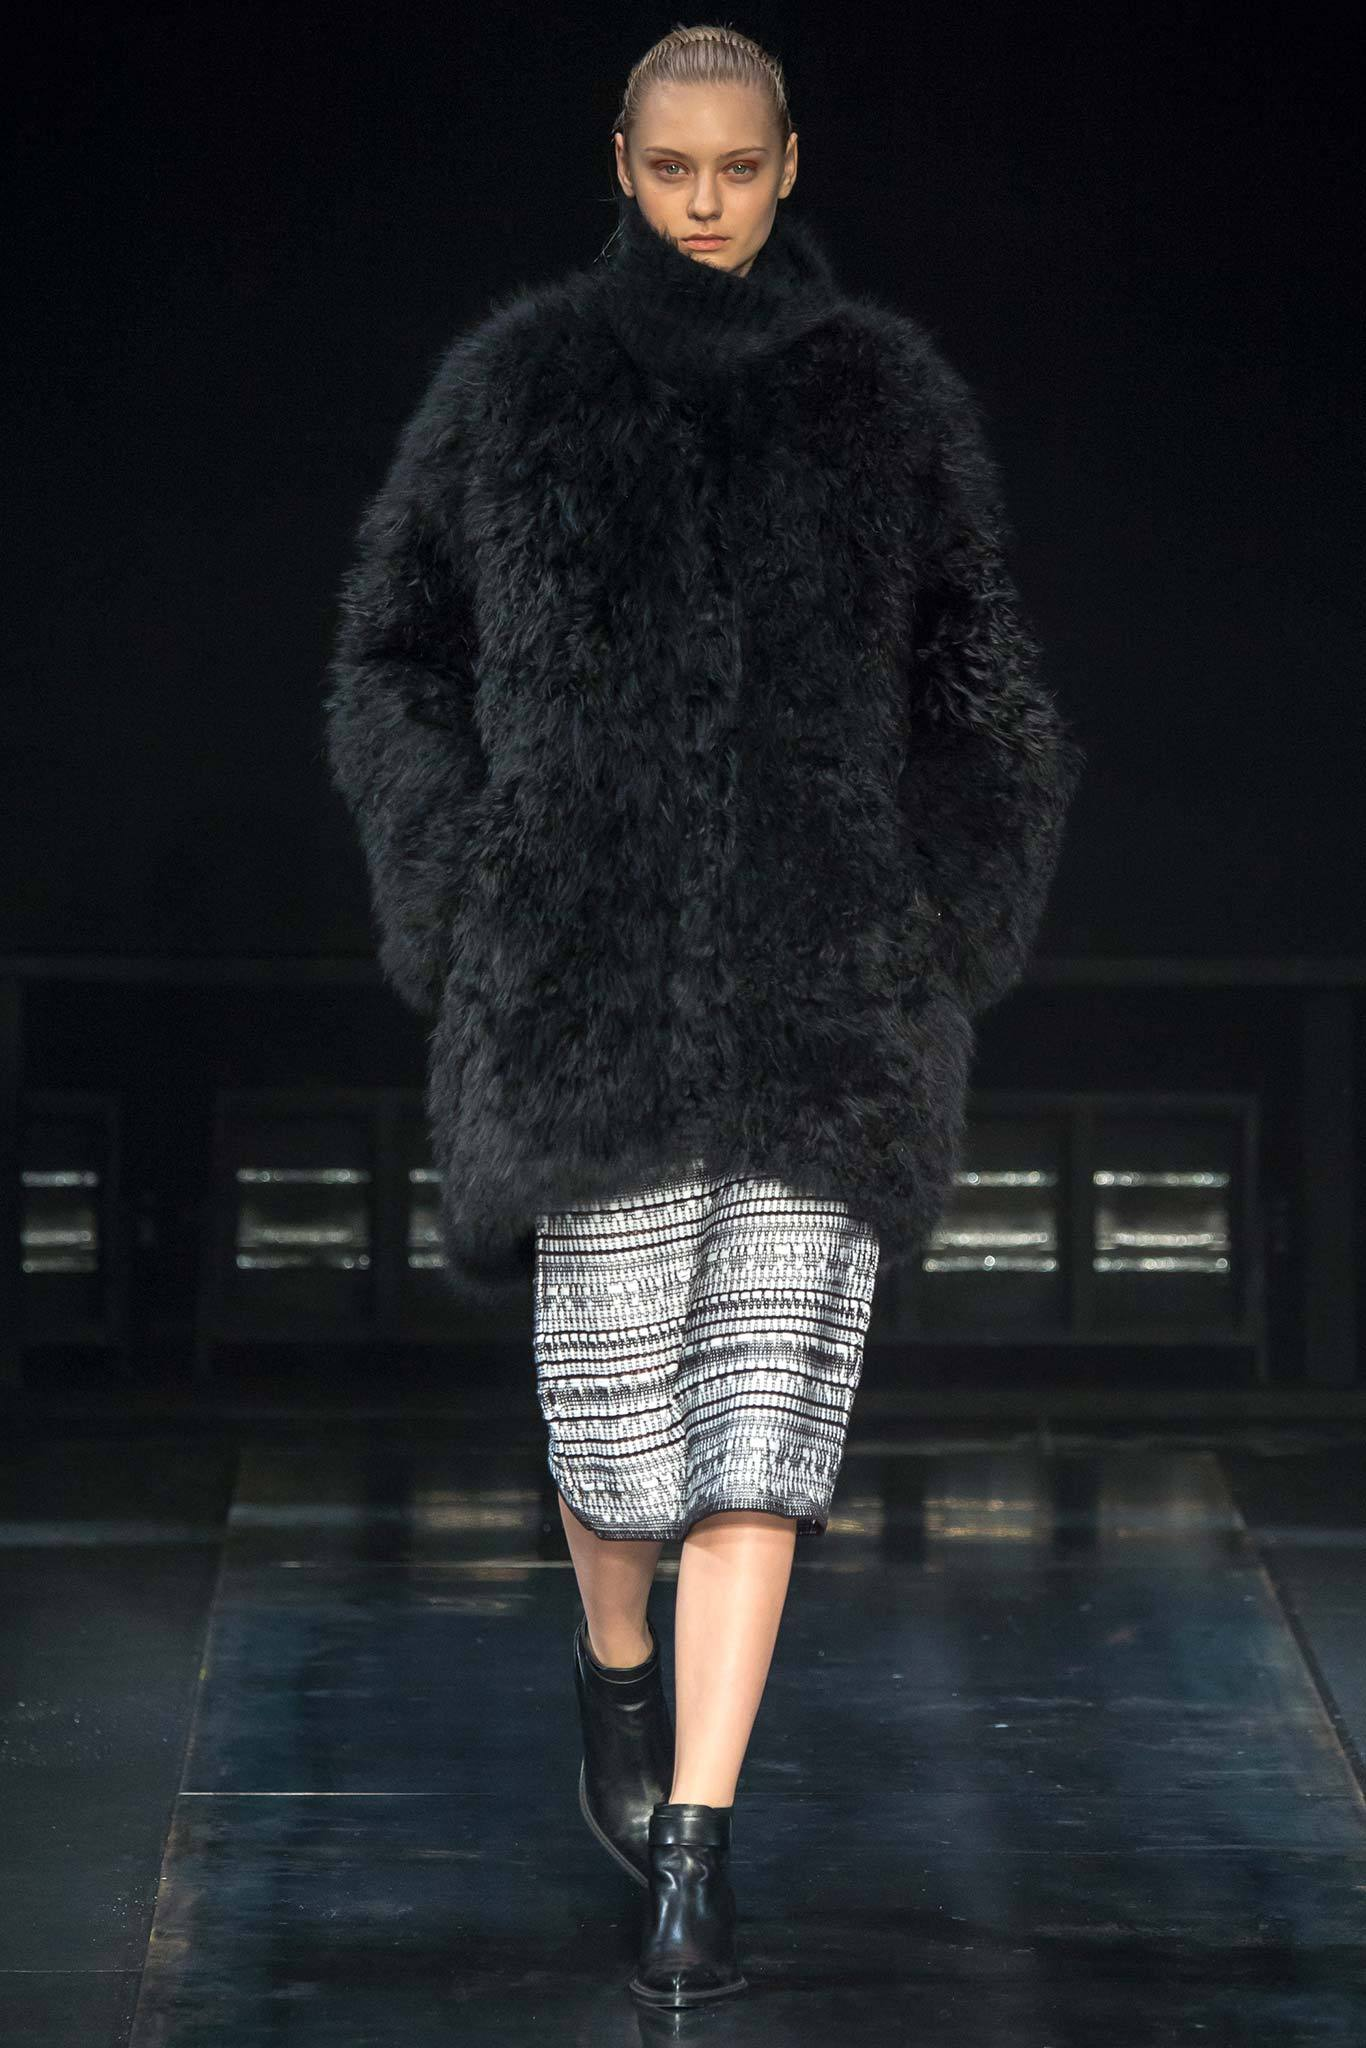 StyleAndMinimalism | Collection Best Bits | What To Wear From AW14 | Helmut Lang AW14 | Oversized Black Fluffy Coat, Textured Patterned Pencil Skirt